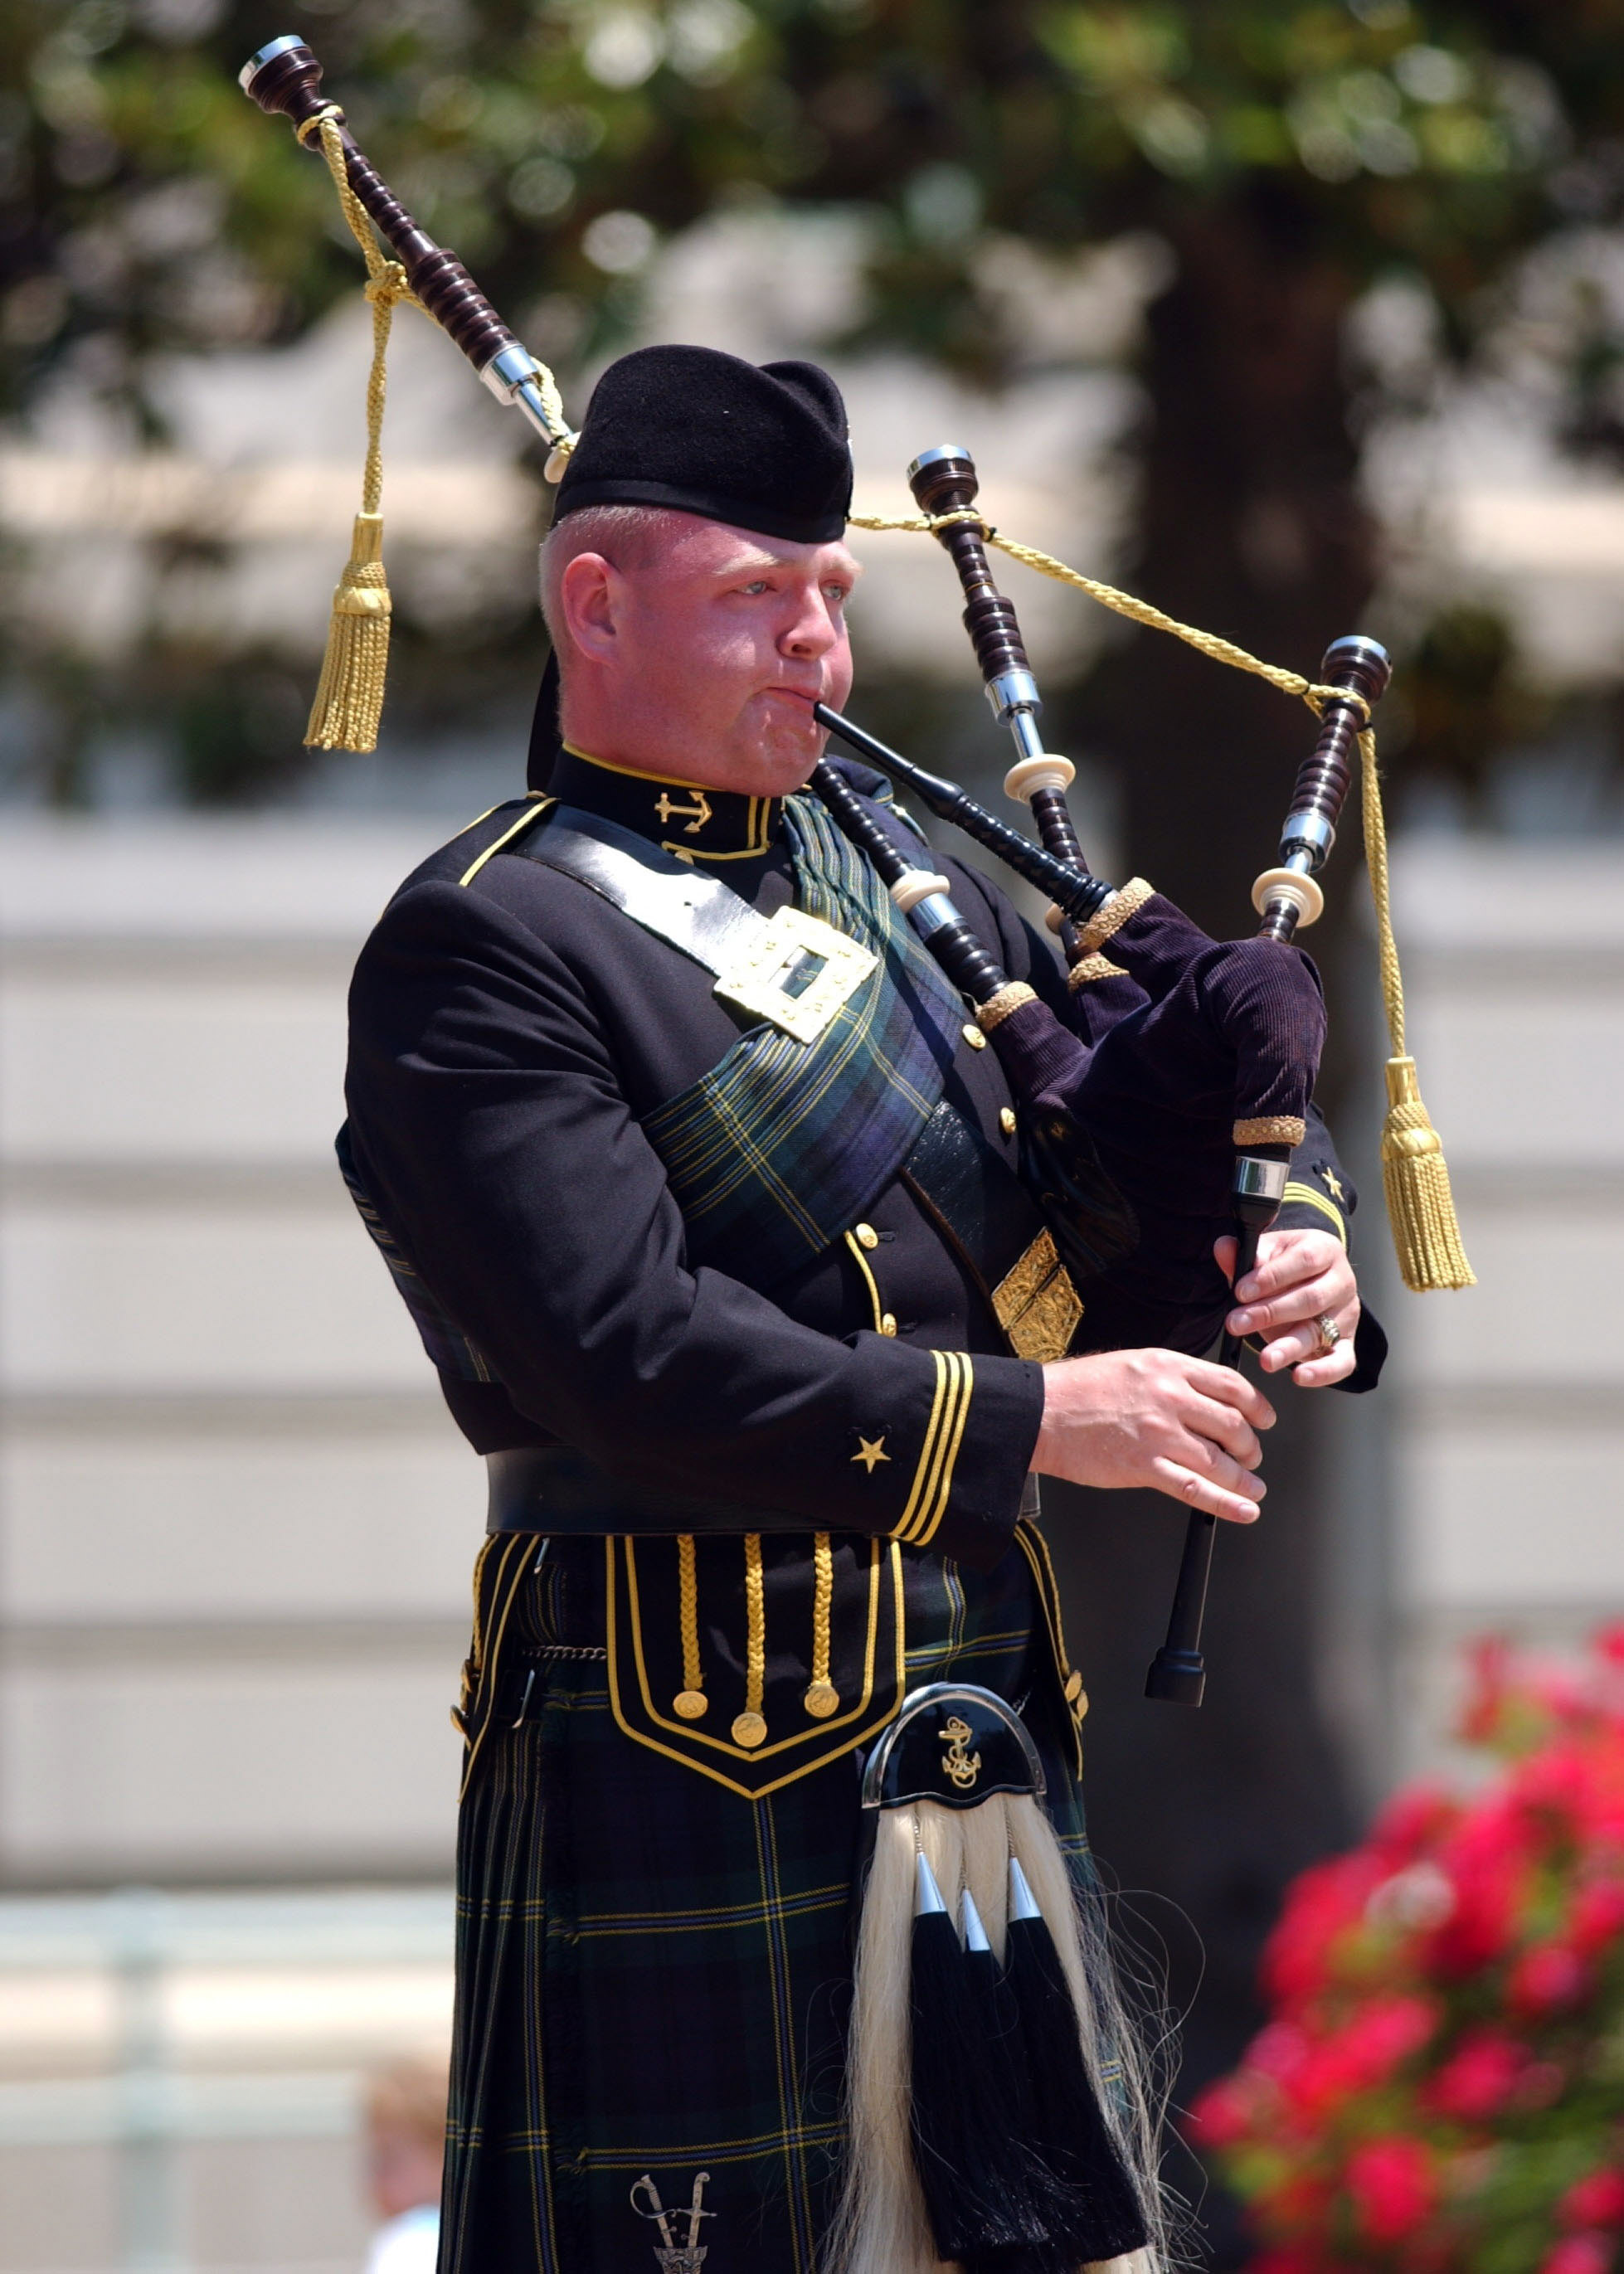 File:US Naval Academy Pipes and Drums bagpiper.jpg - Wikimedia Commons